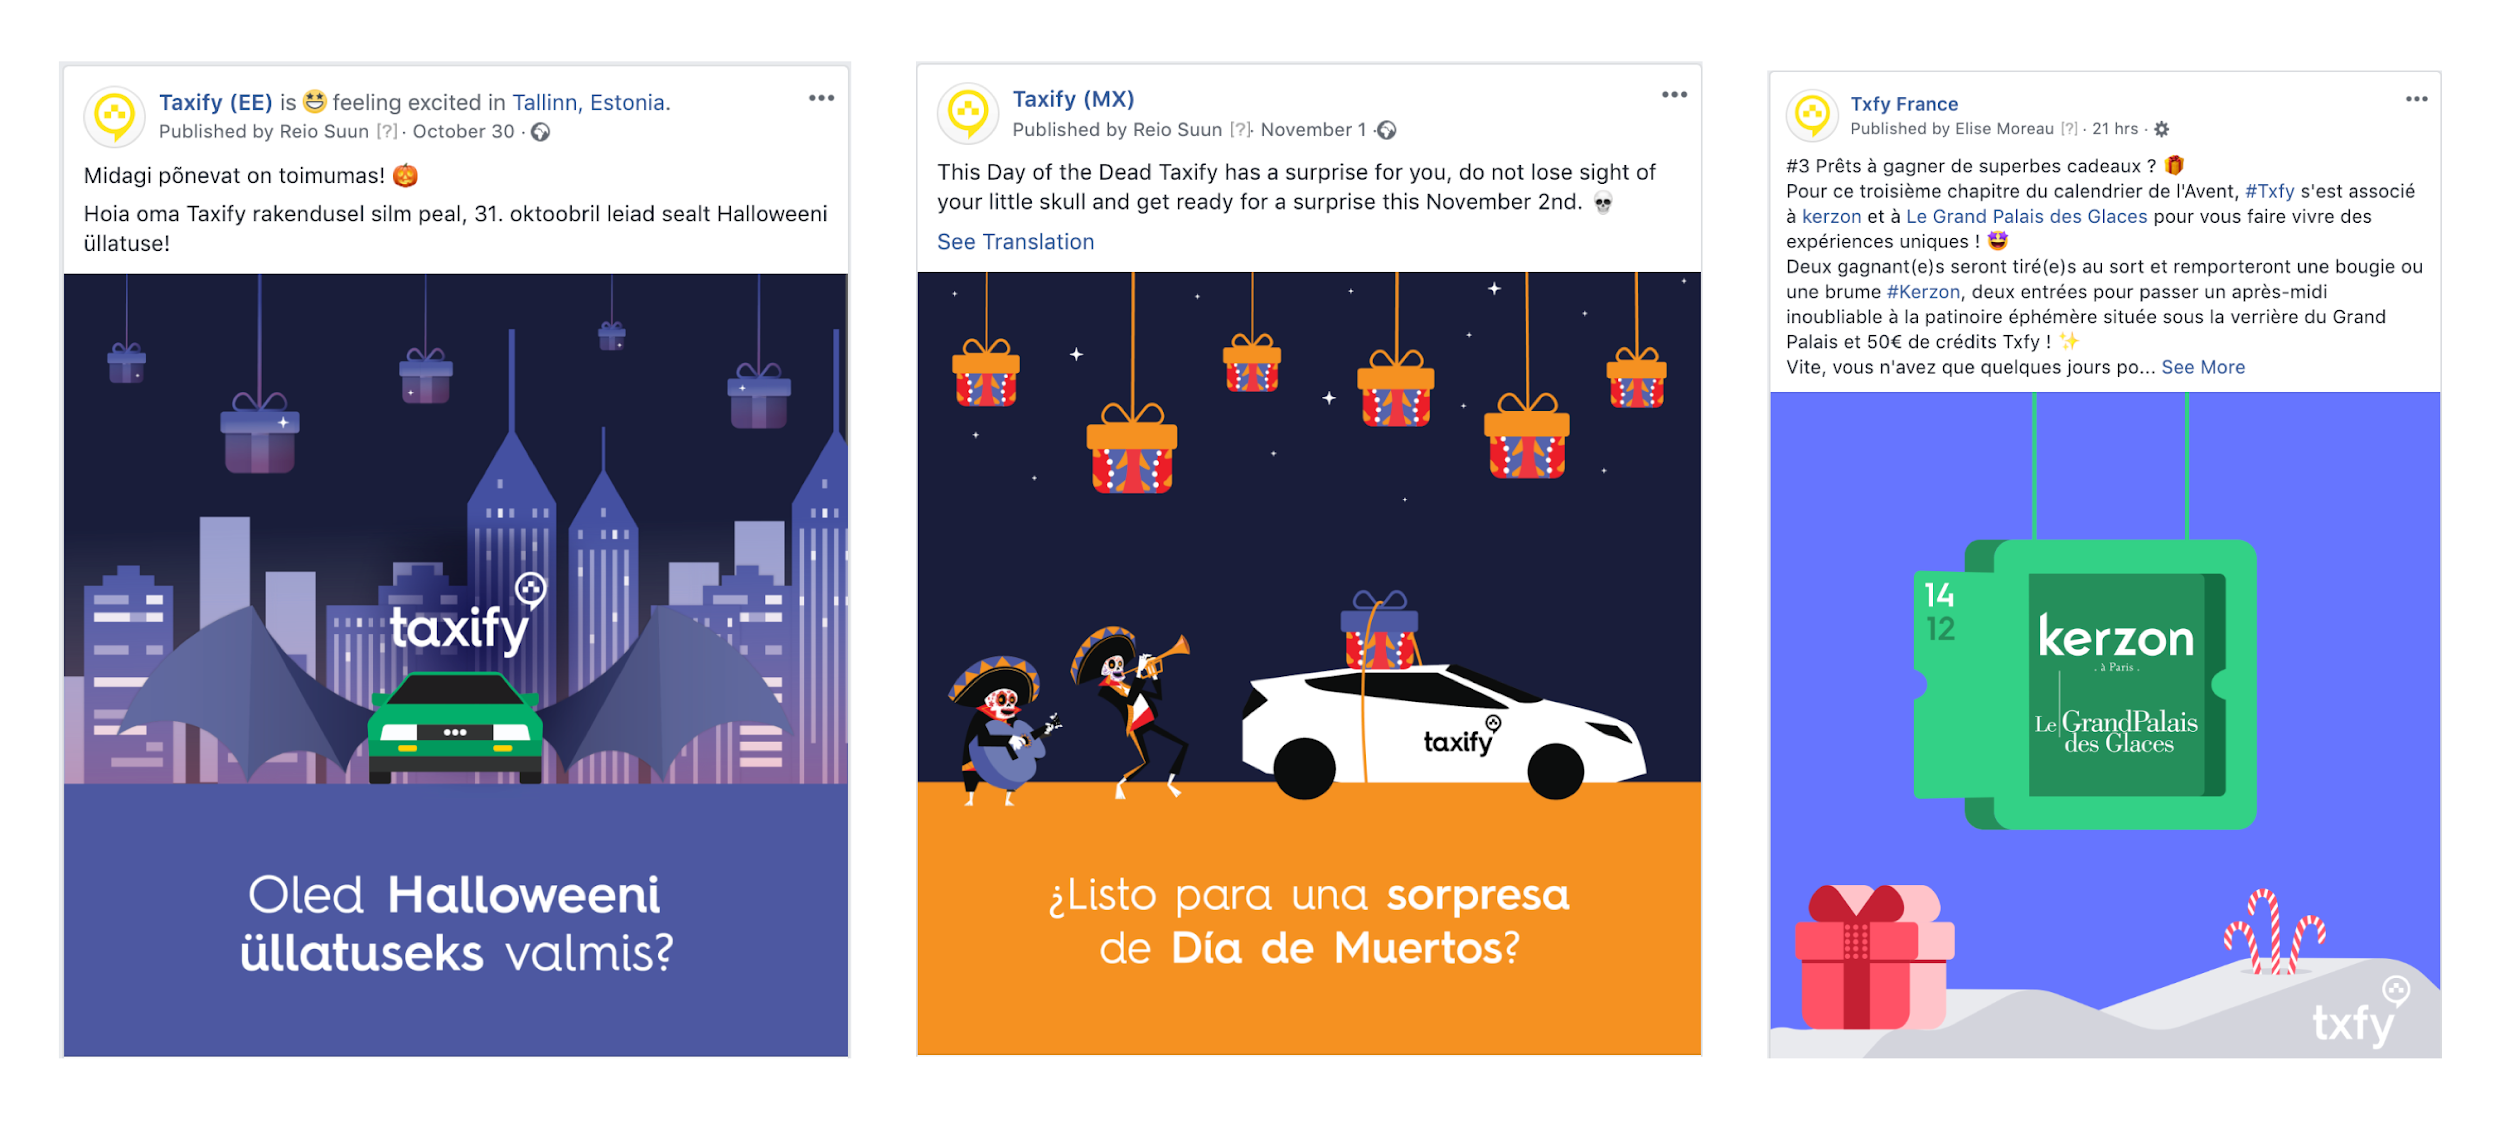 Taxify marketing campaigns from 2018